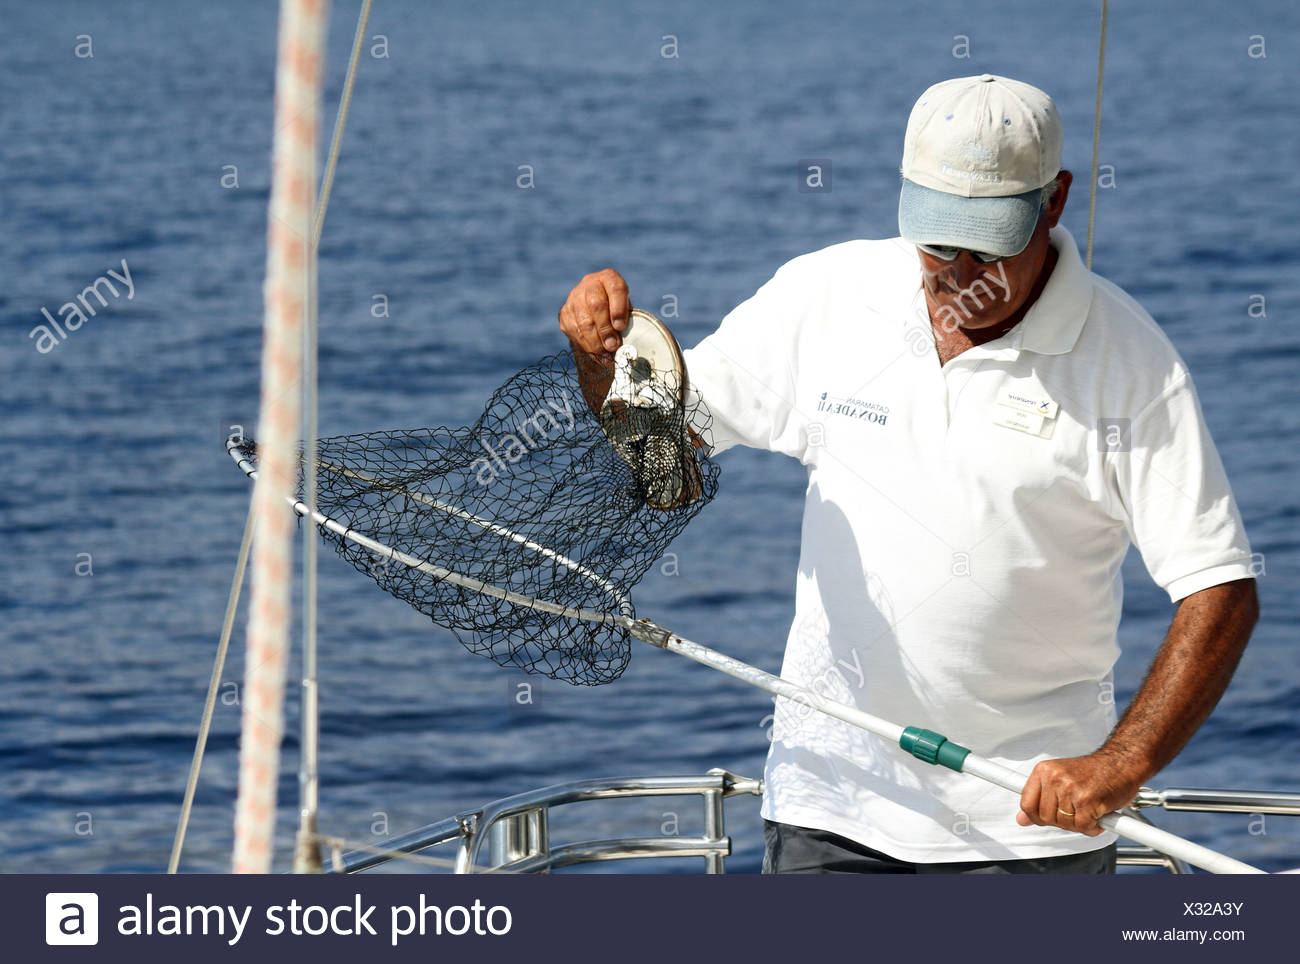 Los Cristianos, Spain, the man took a shoe from a Nets - Stock Image